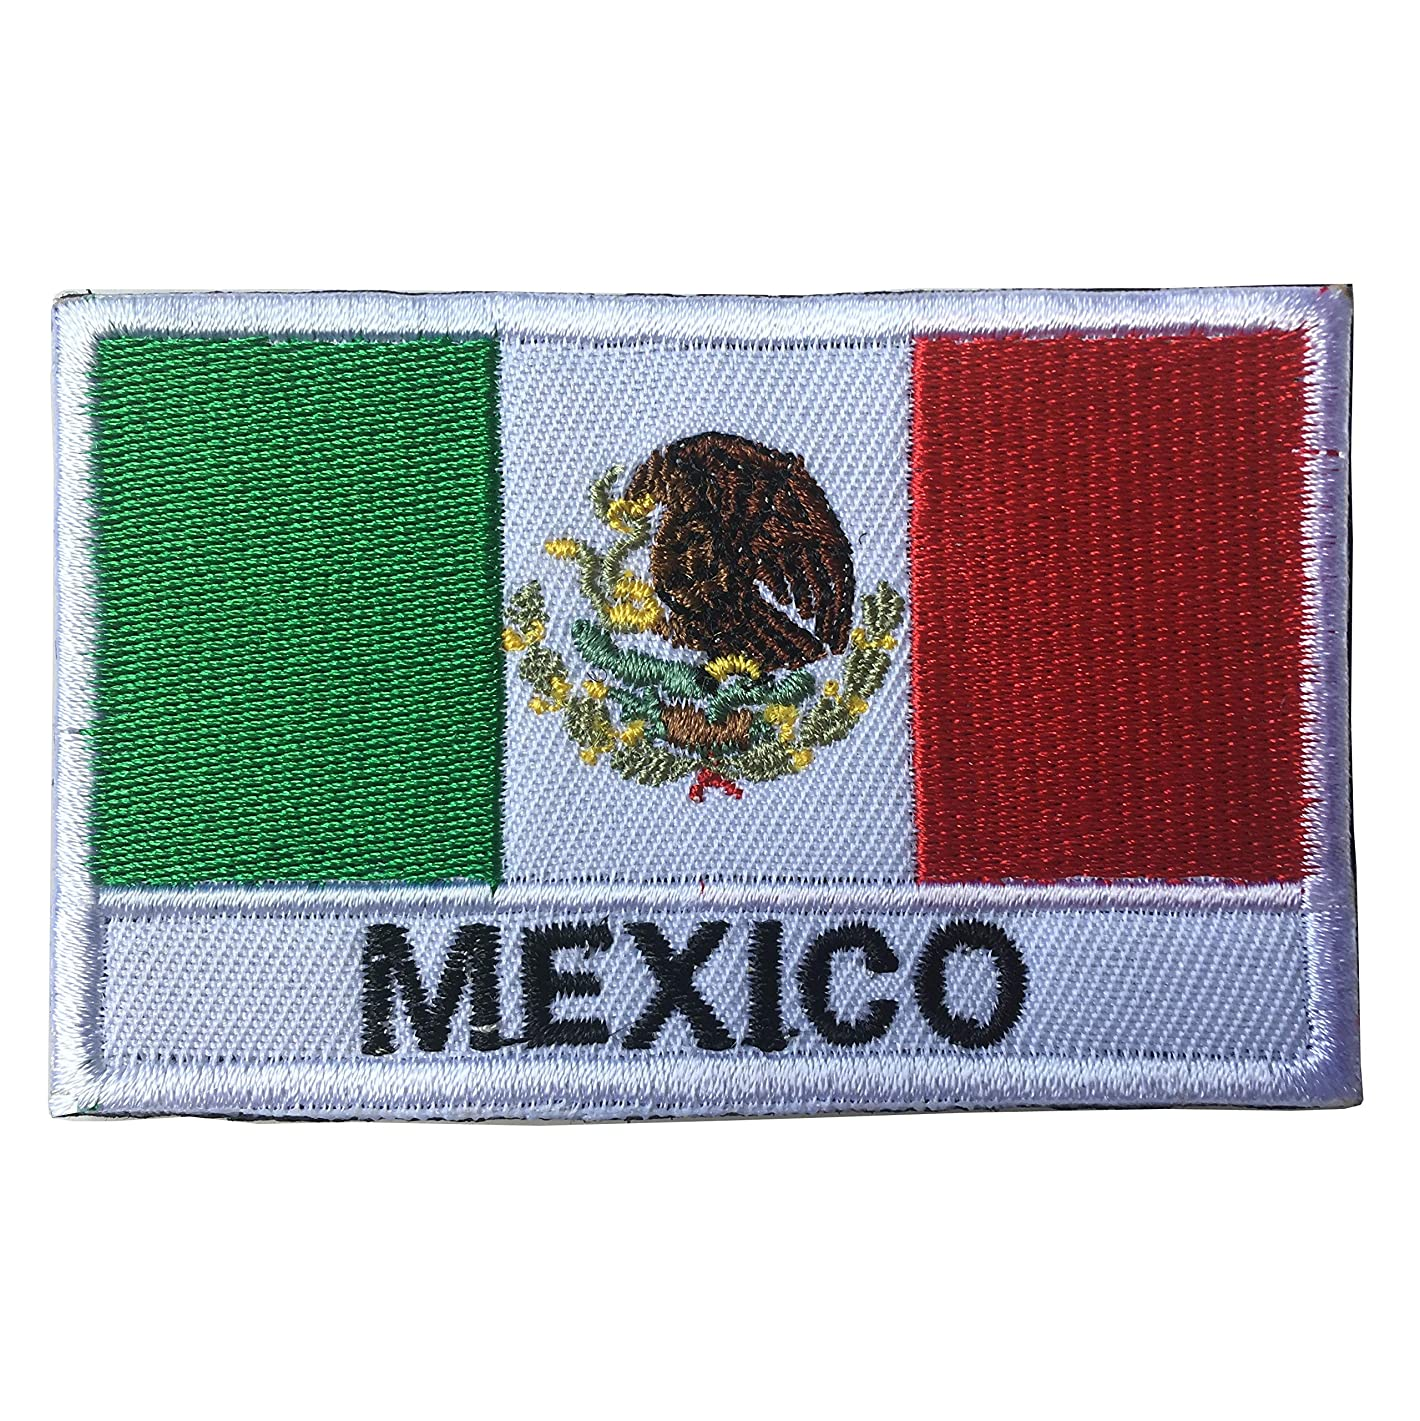 Mexico National Flag Emblem Embroidered Iron-On Patch (2